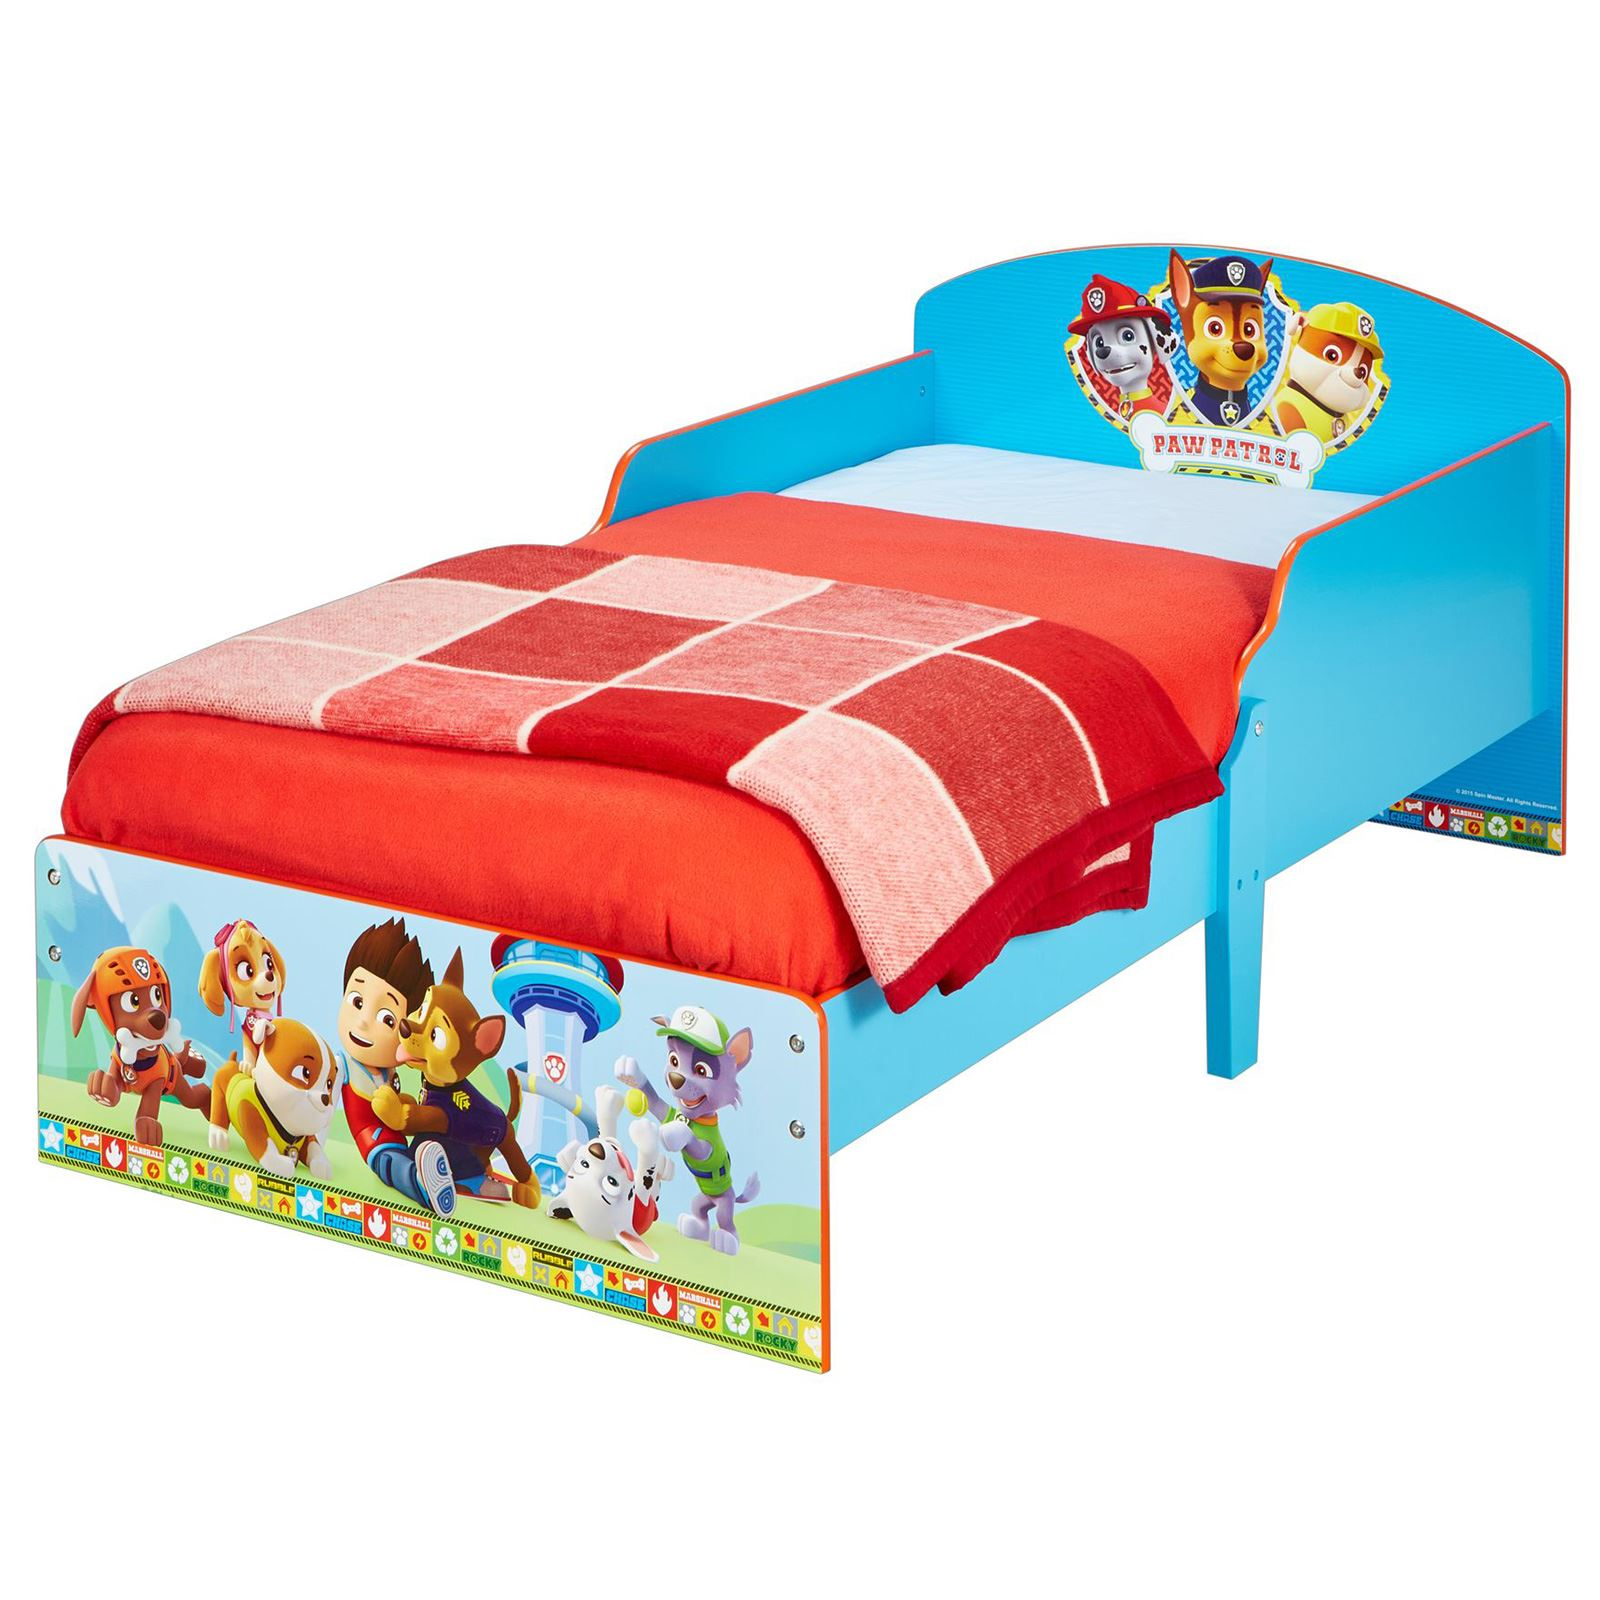 PAW PATROL TODDLER BED BLUE WITH DELUXE FOAM MATTRESS NEW FREE P